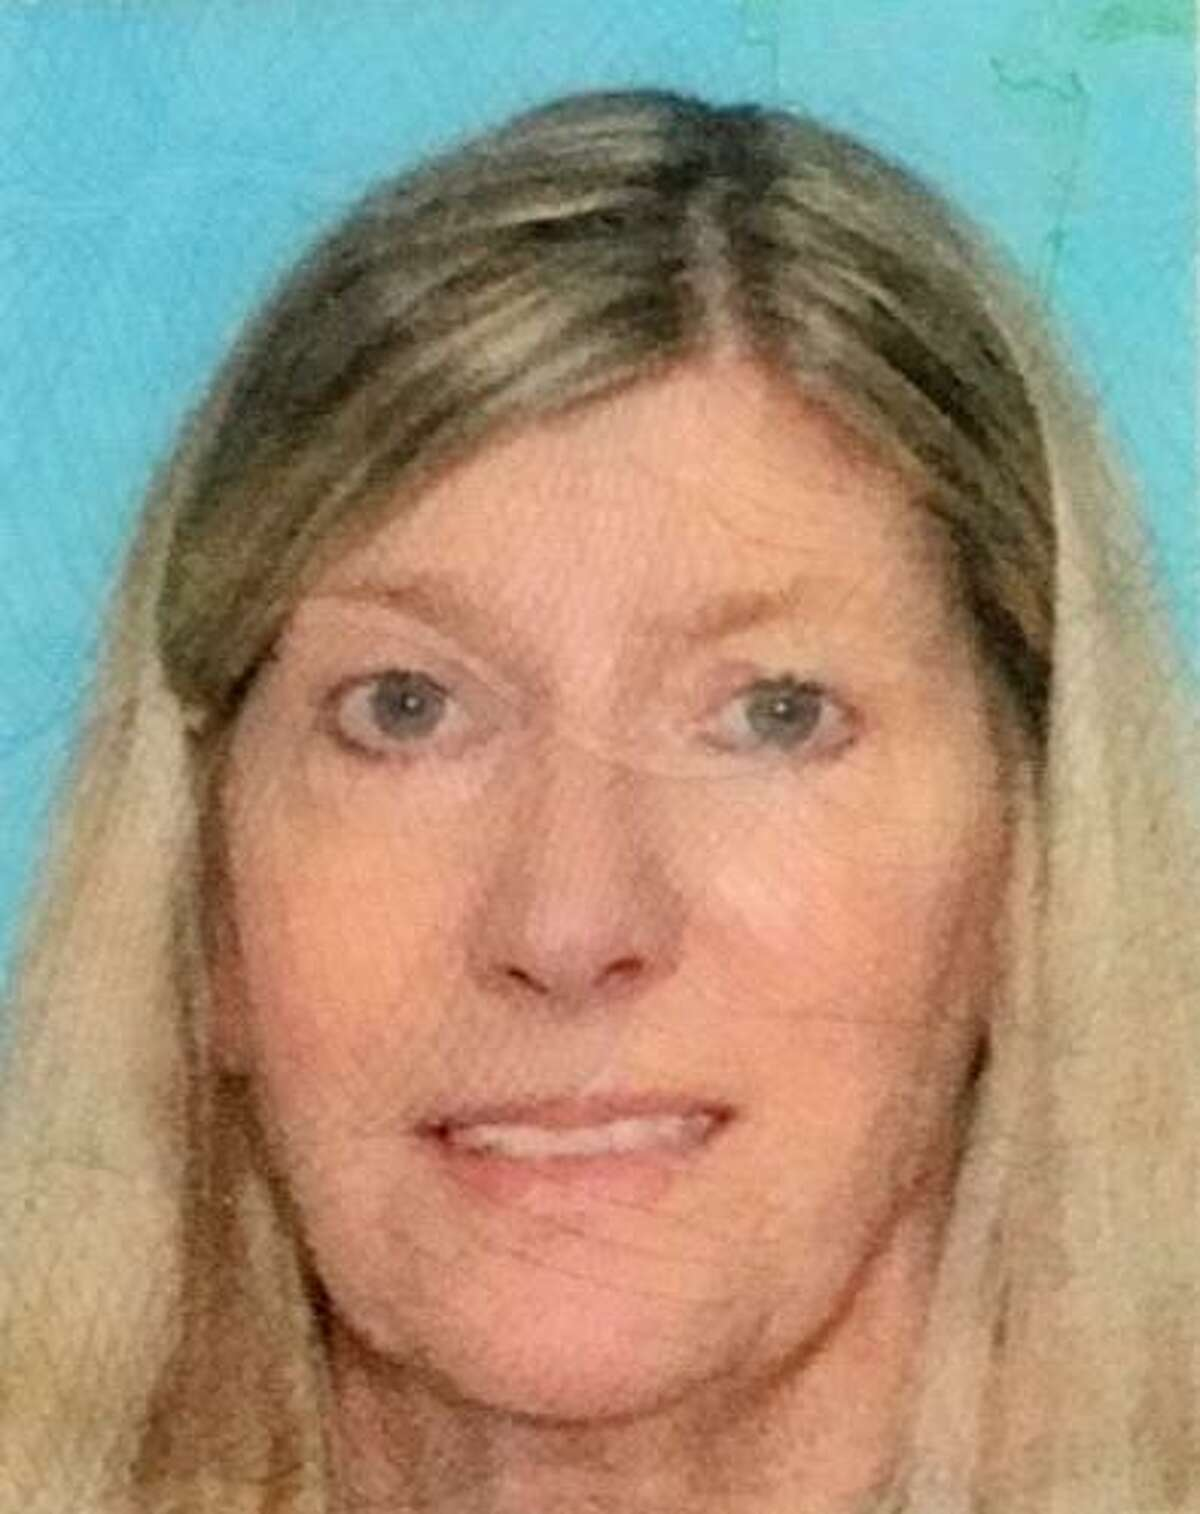 Christine Manna, 58, was found dead in a pool at her North Stamford home on Friday, July 5.